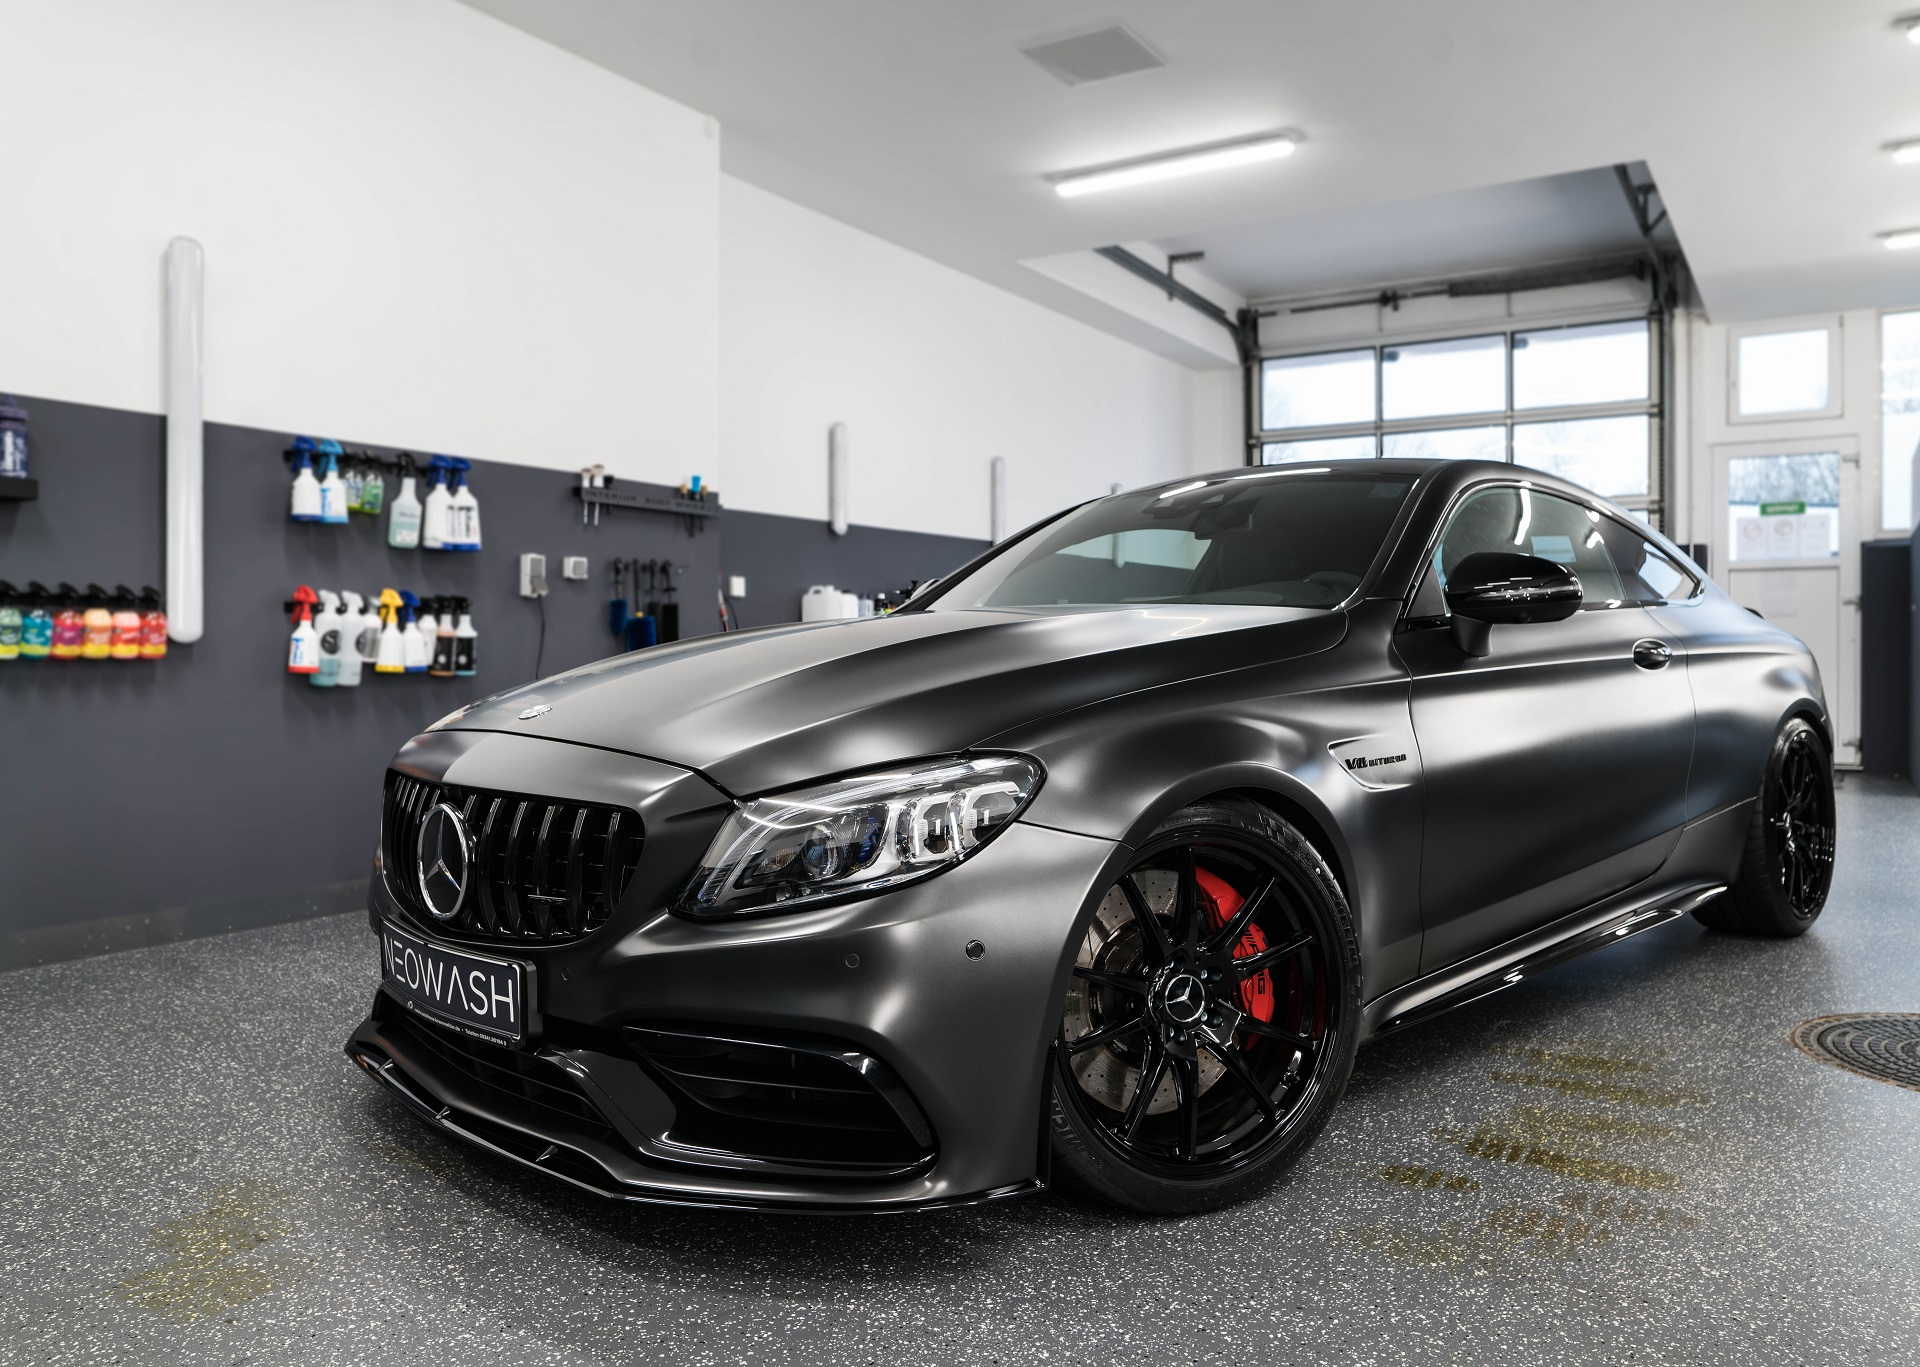 Mercedes Benz C63s AMG Coupe